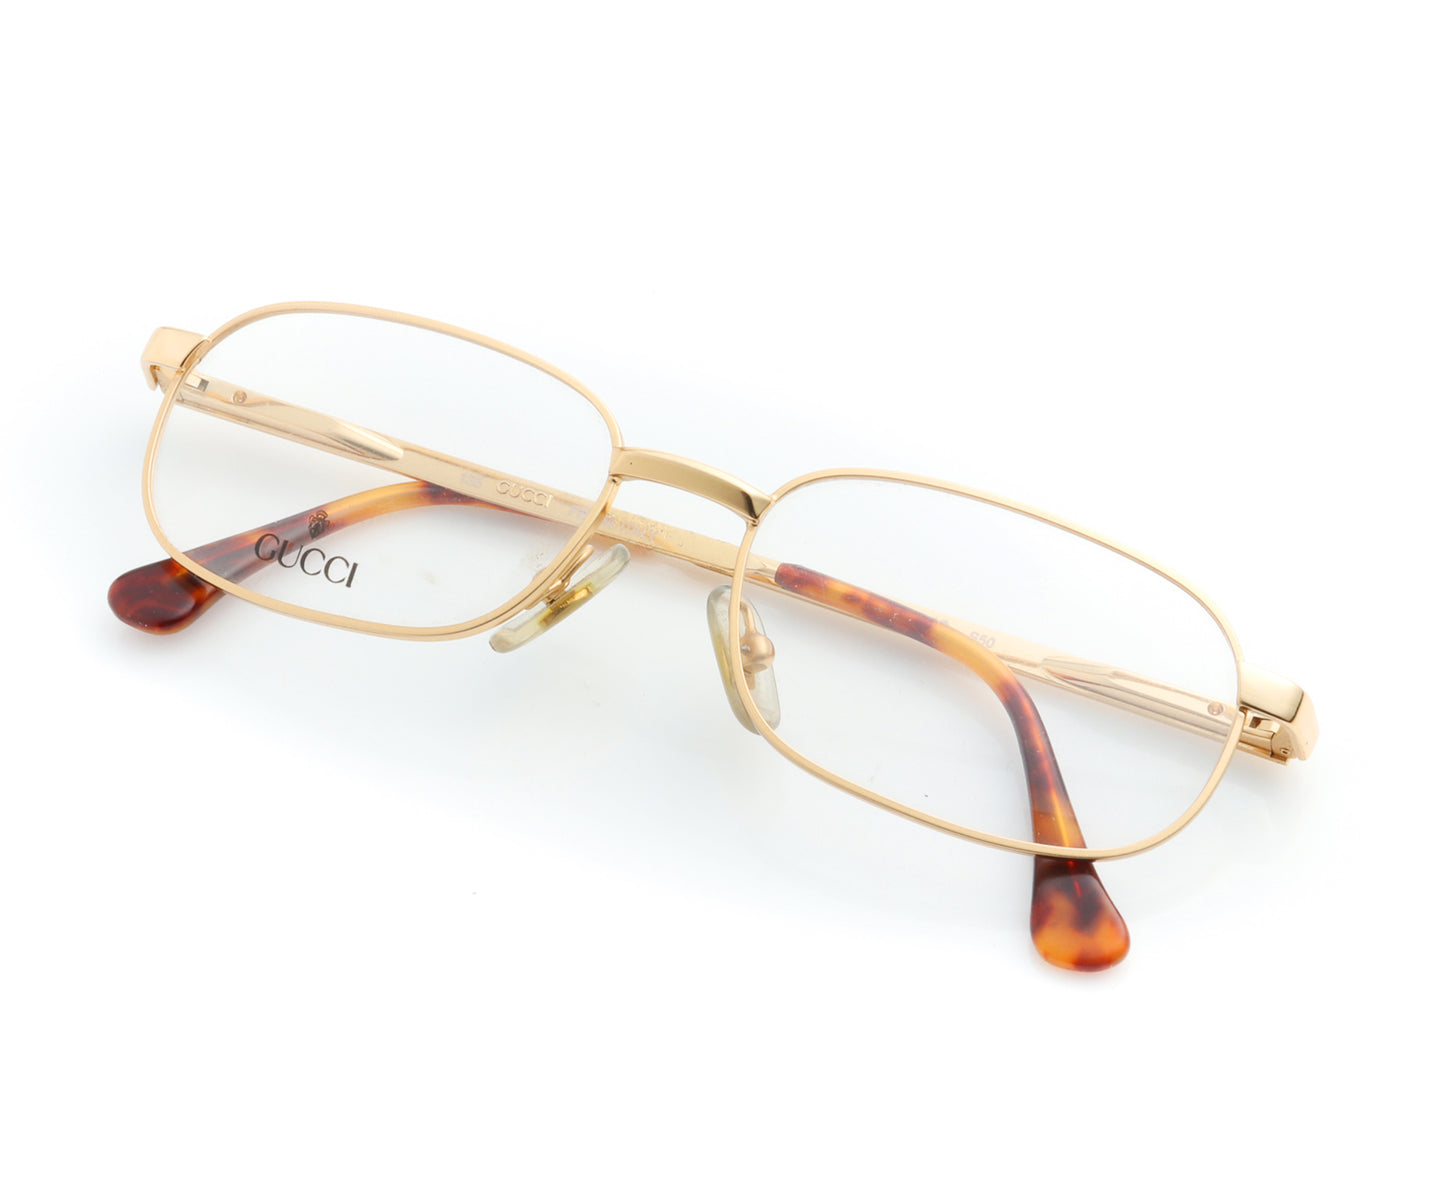 Gucci GG 1249 S50, Gucci , glasses frames, eyeglasses online, eyeglass frames, mens glasses, womens glasses, buy glasses online, designer eyeglasses, vintage sunglasses, retro sunglasses, vintage glasses, sunglass, eyeglass, glasses, lens, vintage frames company, vf